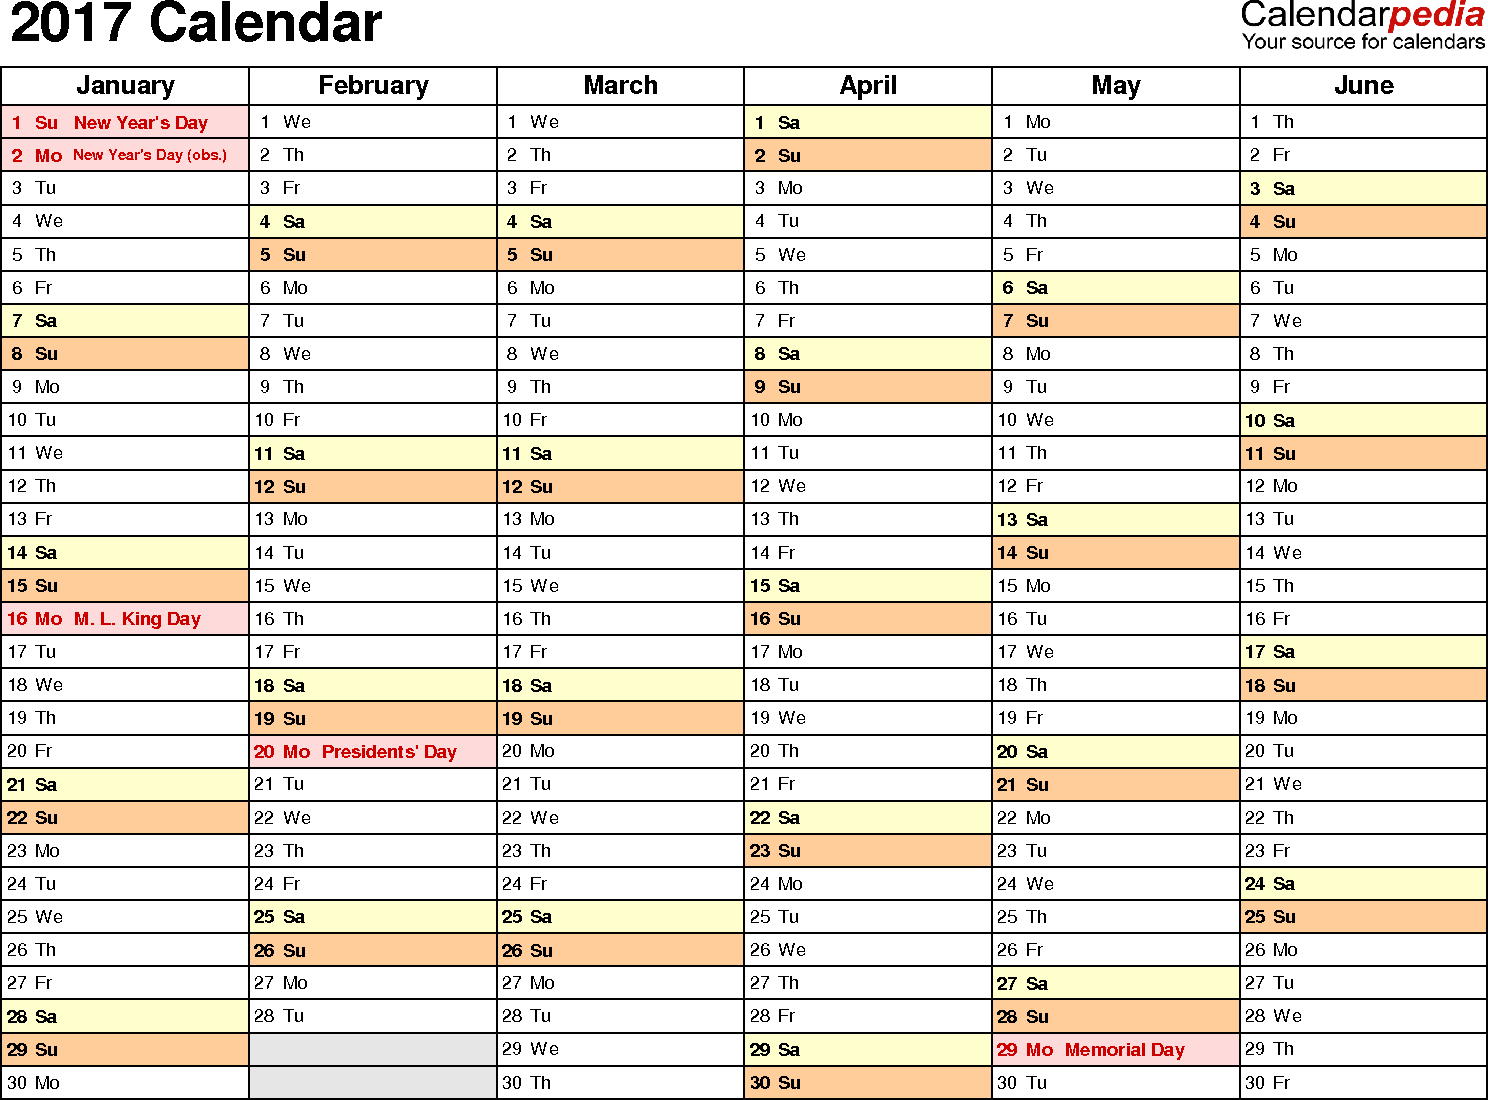 Ediblewildsus  Sweet  Calendar Excel  My Cms With Lovely Template   Calendar For With Adorable Excel Cannot Complete This Task With Available Resources  Fix Also Run Macro Excel In Addition For Loop Vba Excel And How Do I Add In Excel As Well As Excel Concatenate Two Columns Additionally Excel Car From Abefendicafecom With Ediblewildsus  Lovely  Calendar Excel  My Cms With Adorable Template   Calendar For And Sweet Excel Cannot Complete This Task With Available Resources  Fix Also Run Macro Excel In Addition For Loop Vba Excel From Abefendicafecom